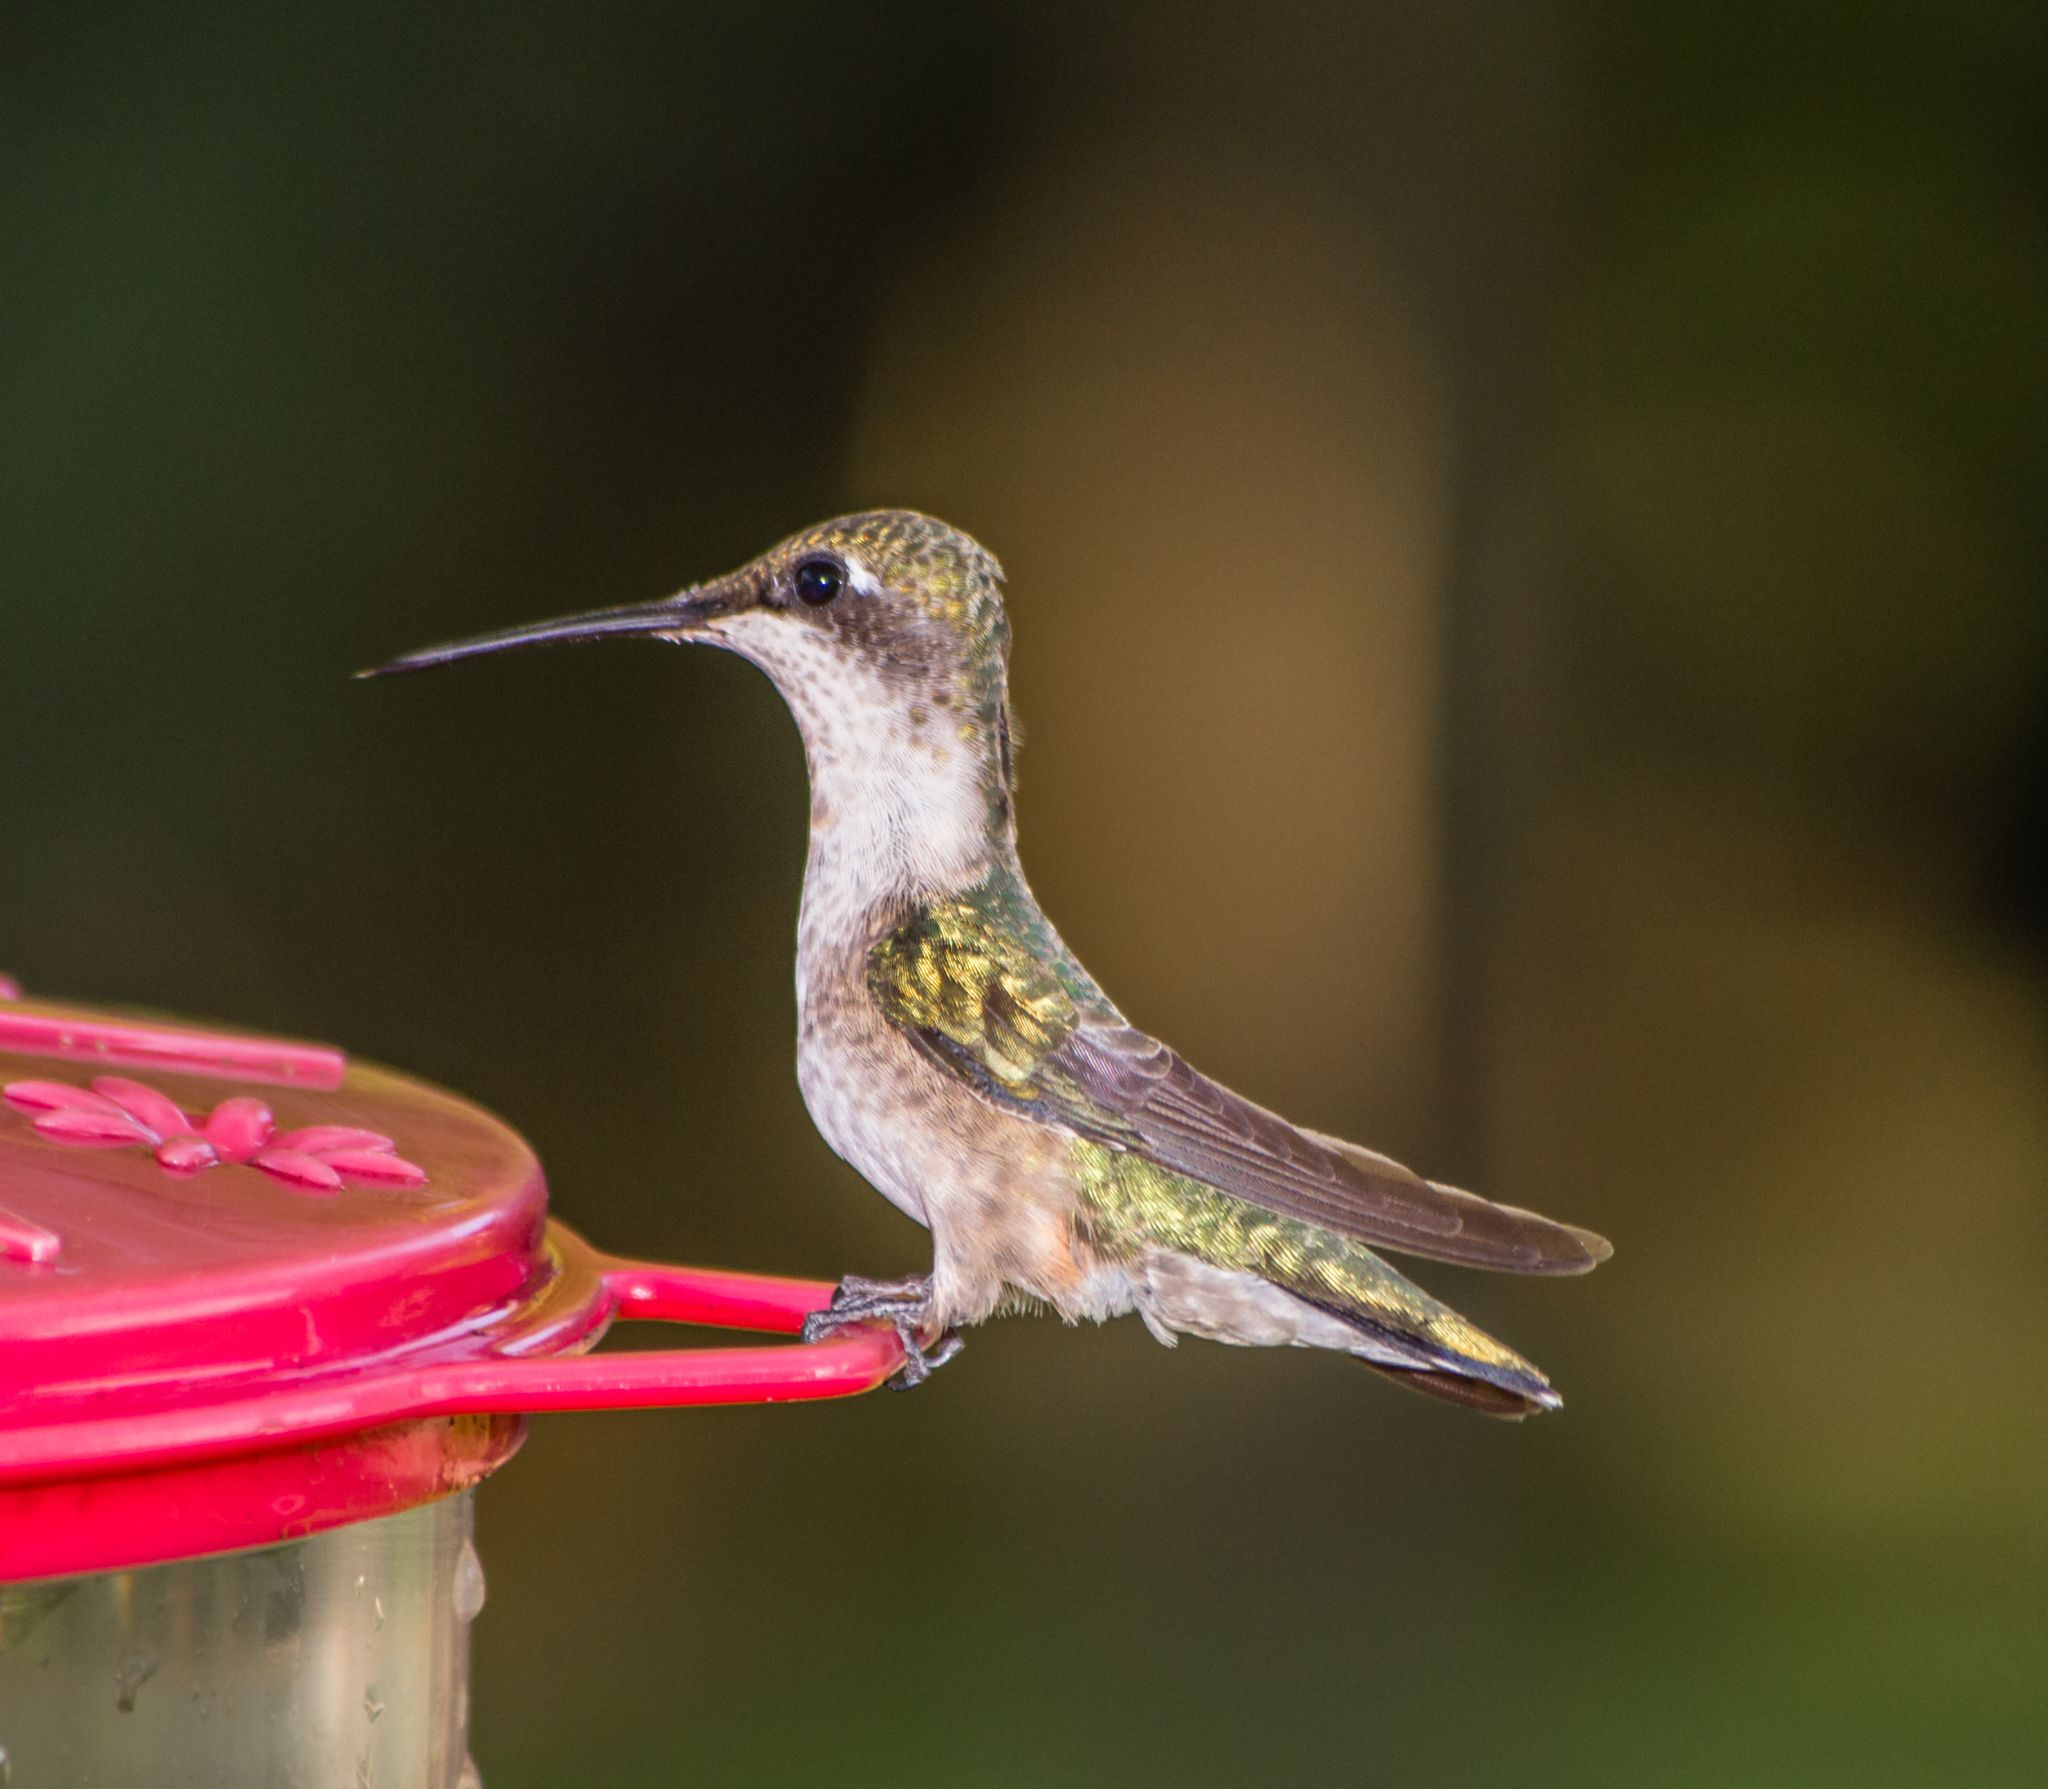 Ready to Eat! by jenmcwhirt